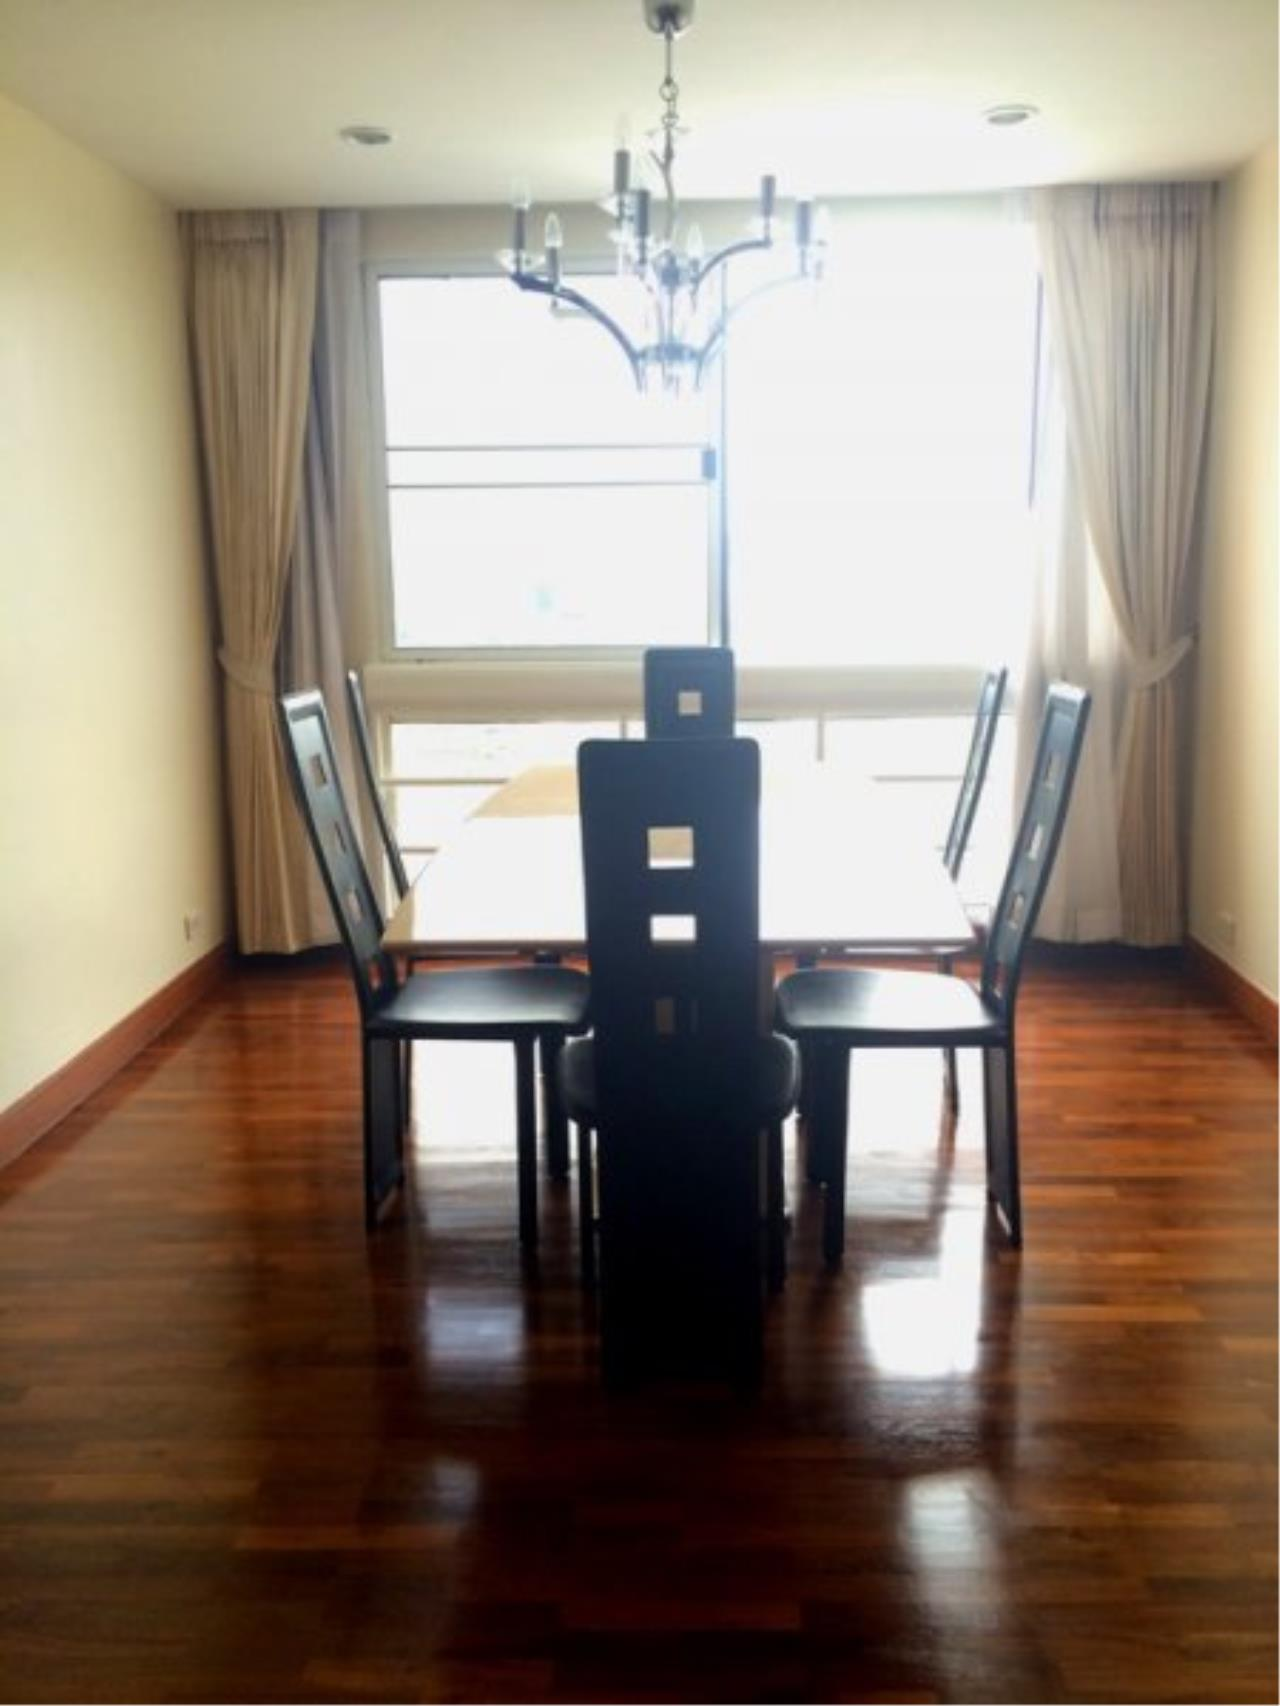 Piri Property Agency's Spacious 3 Bedrooms in the President Park Condominium for rent on high floor 3